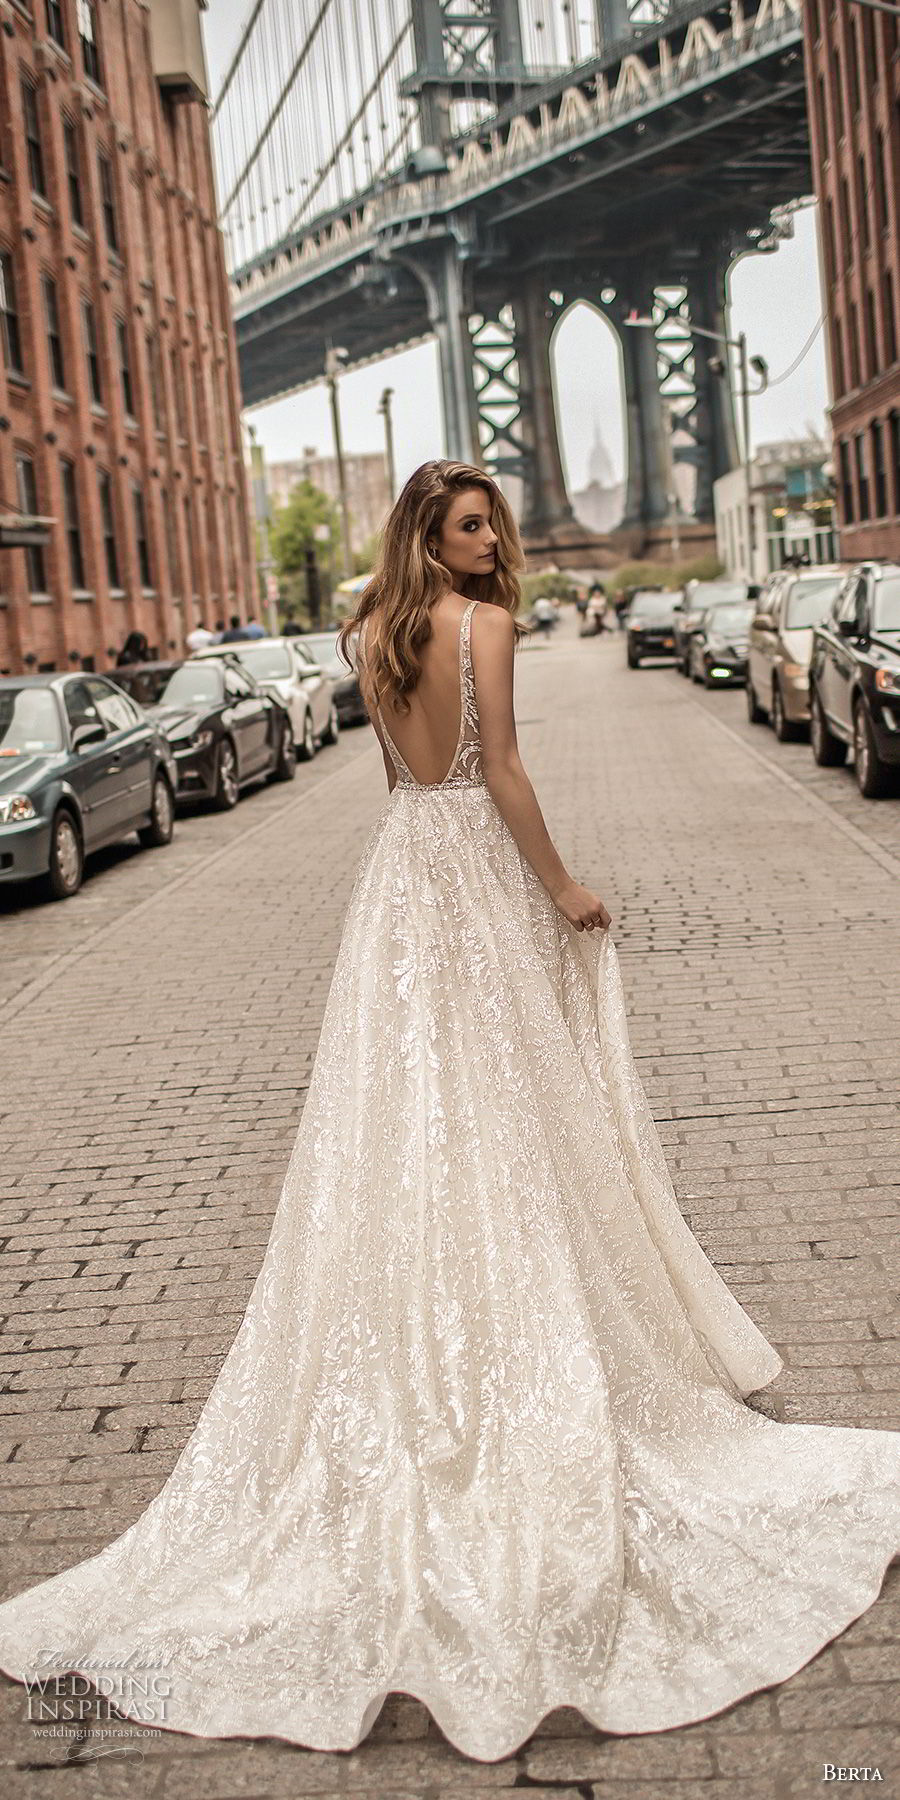 berta spring 2018 bridal sleeveless deep plunging v neck full embellishment sexy romantic a line wedding dress pockets open scoop back chapel train (4) bv